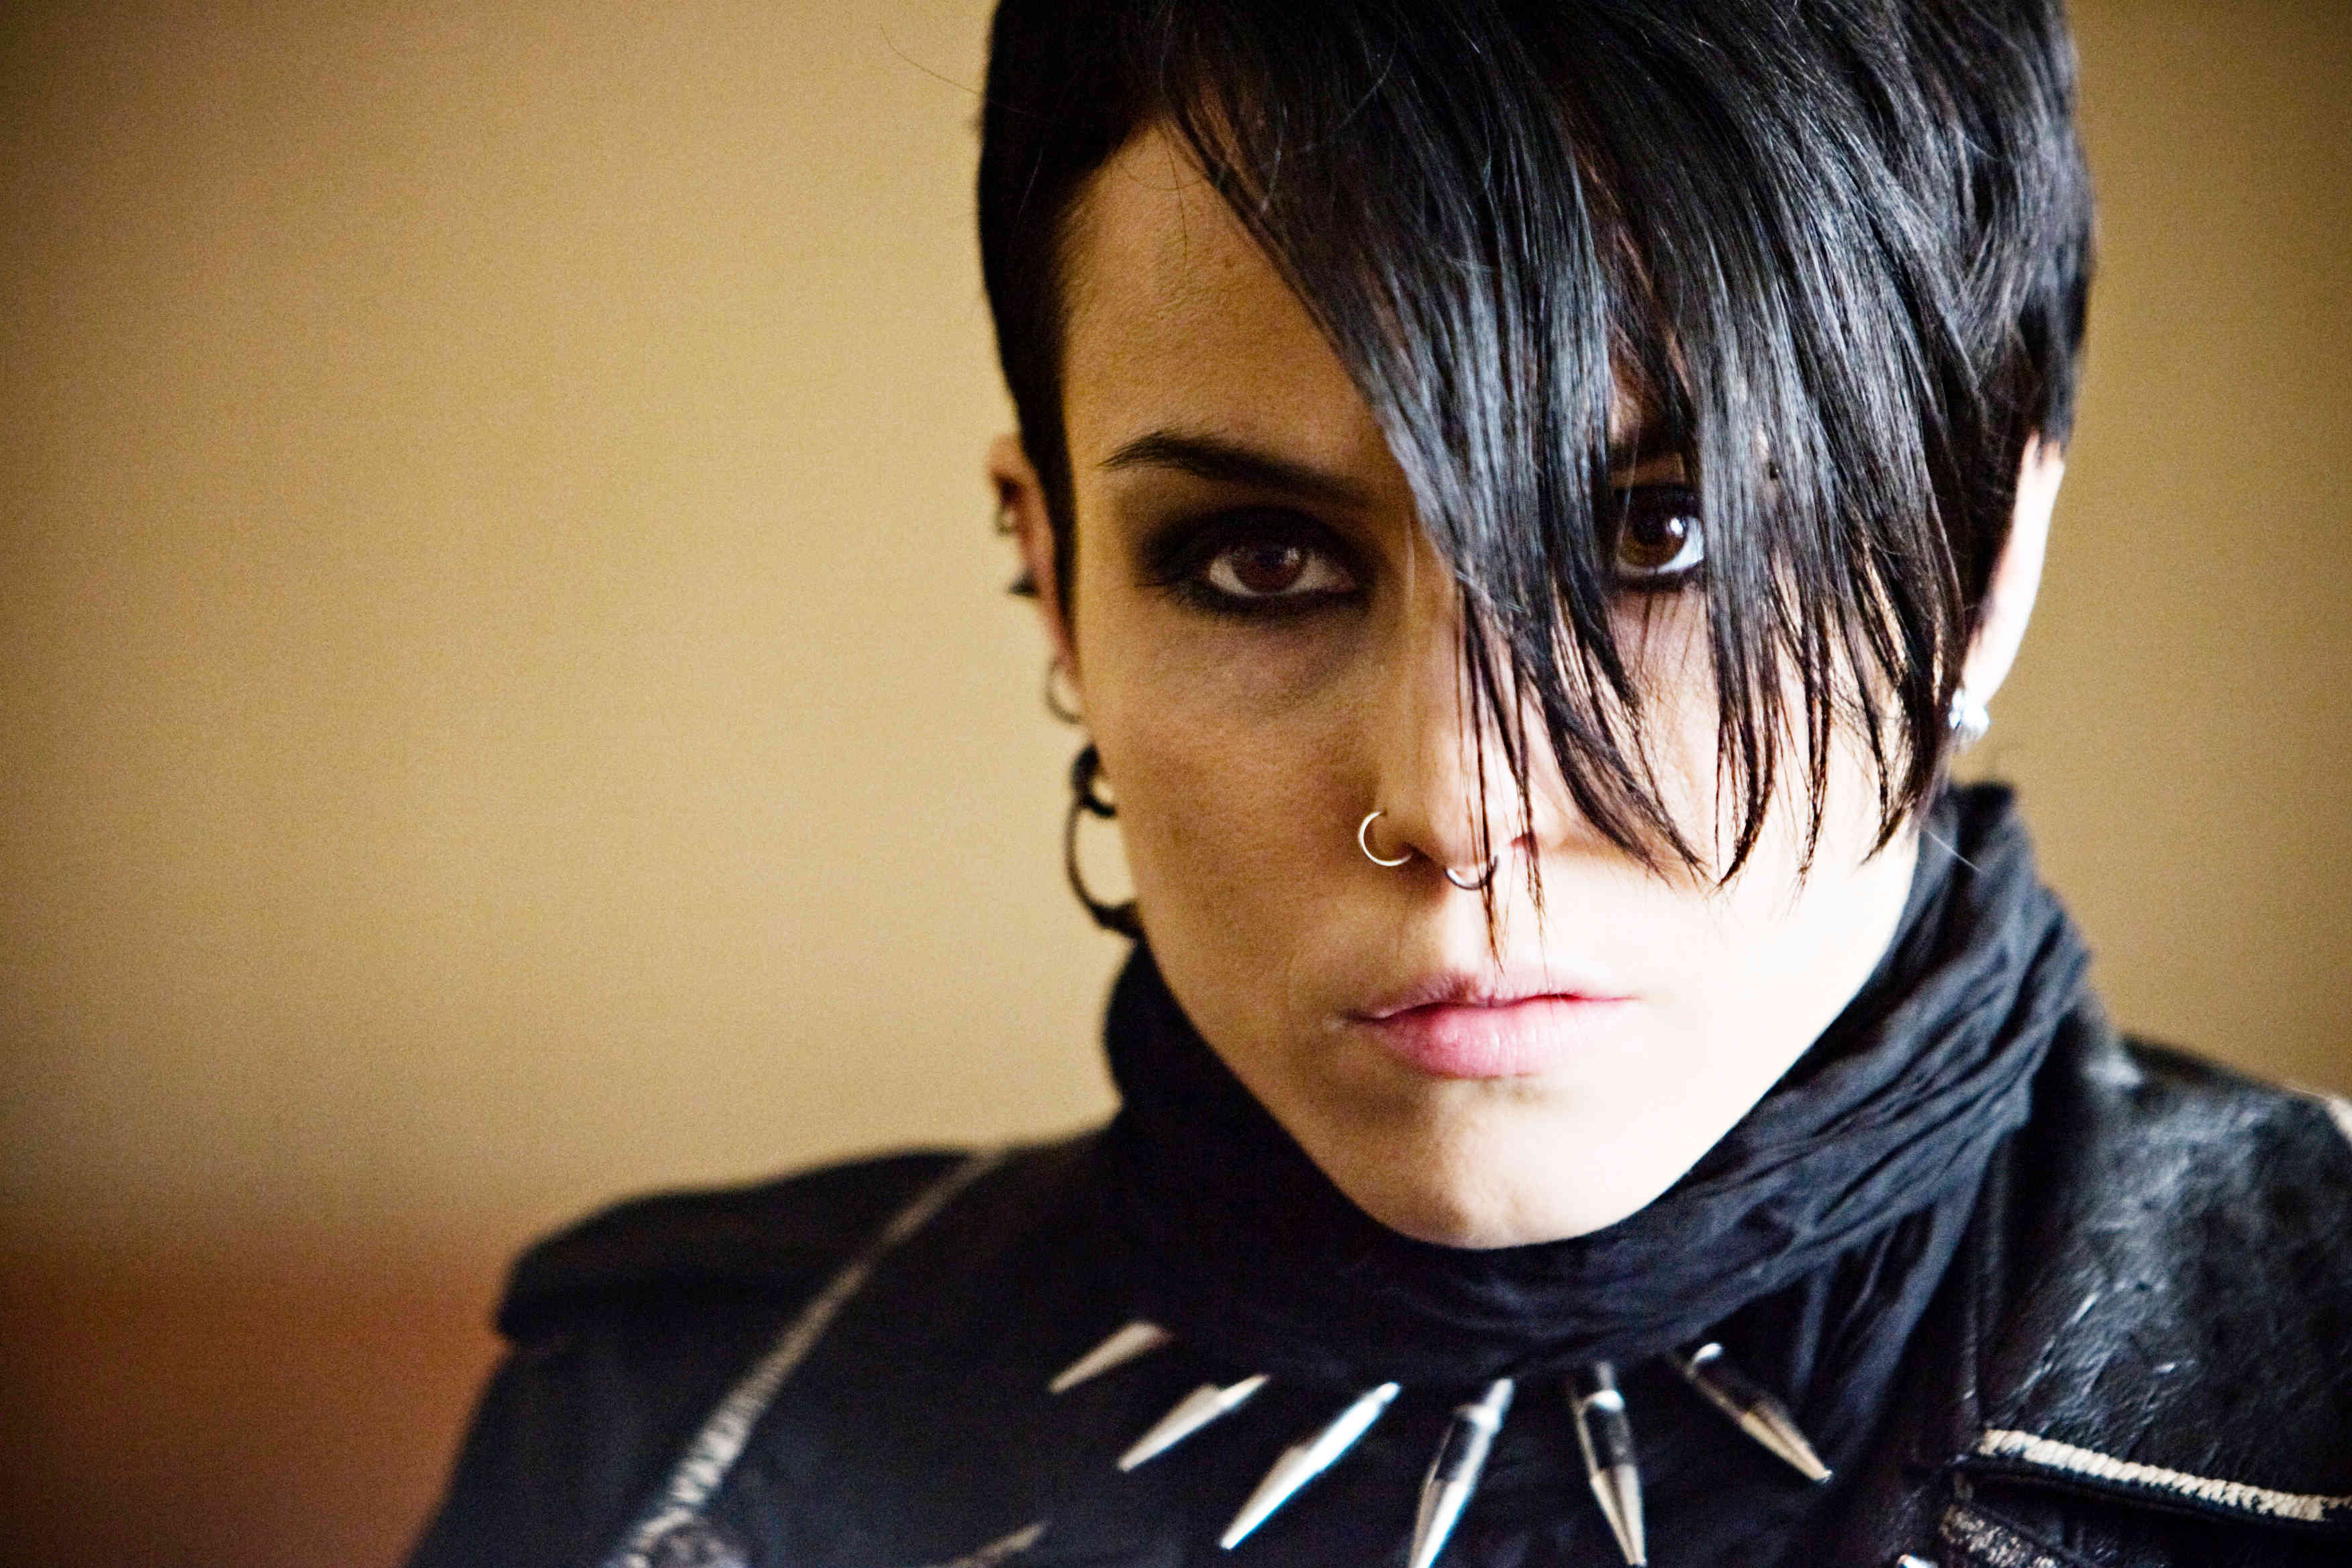 The Girl With The Dragon Tattoo Hollywood Hasn't Cornered Ideas And Designs